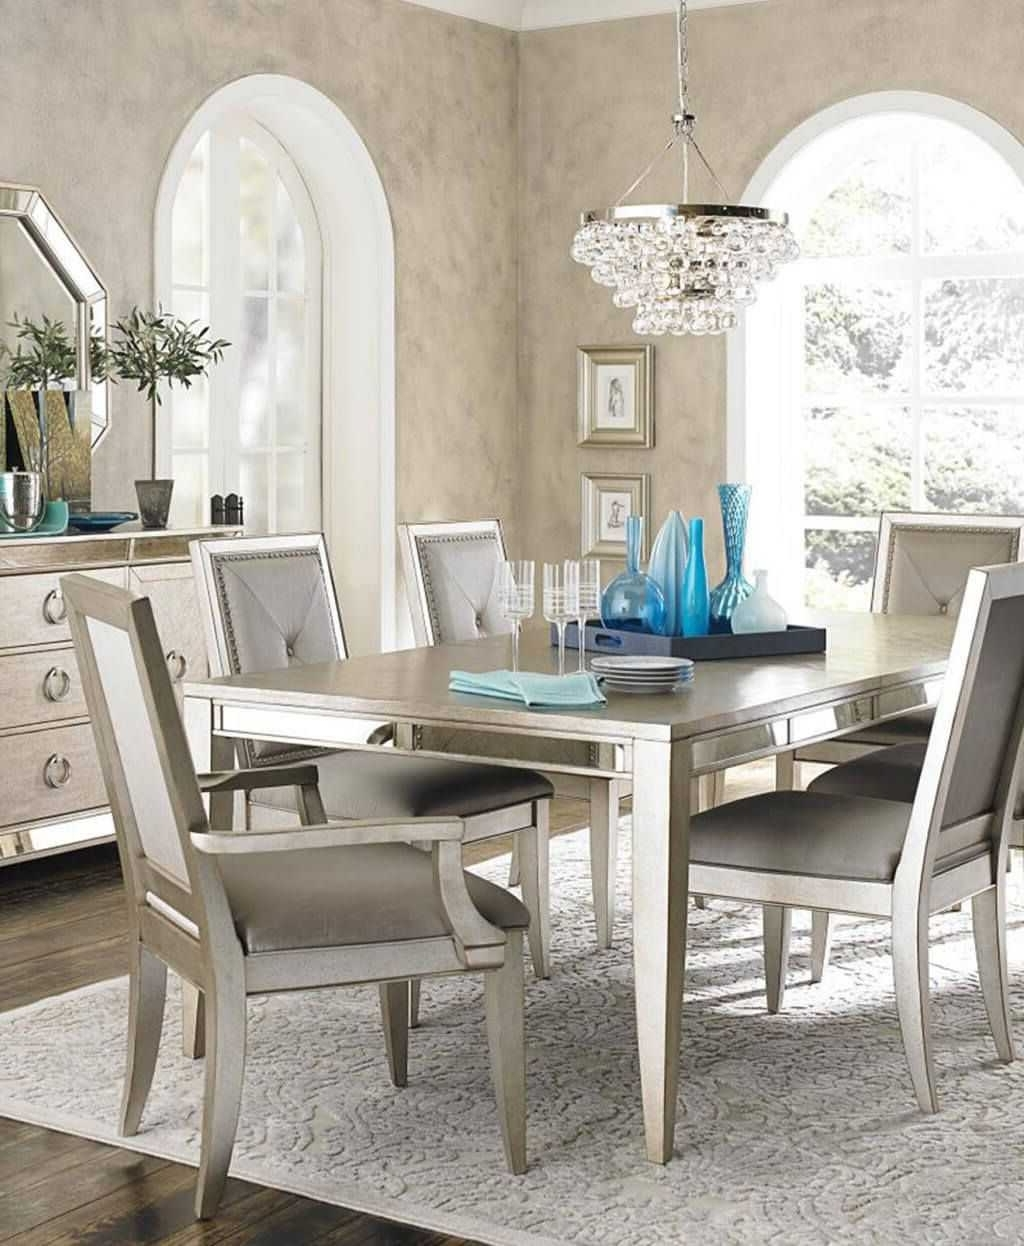 Outstanding Macys Dining Room Chairs Collection Including Macy S Inside Favorite Macie Round Dining Tables (View 18 of 25)